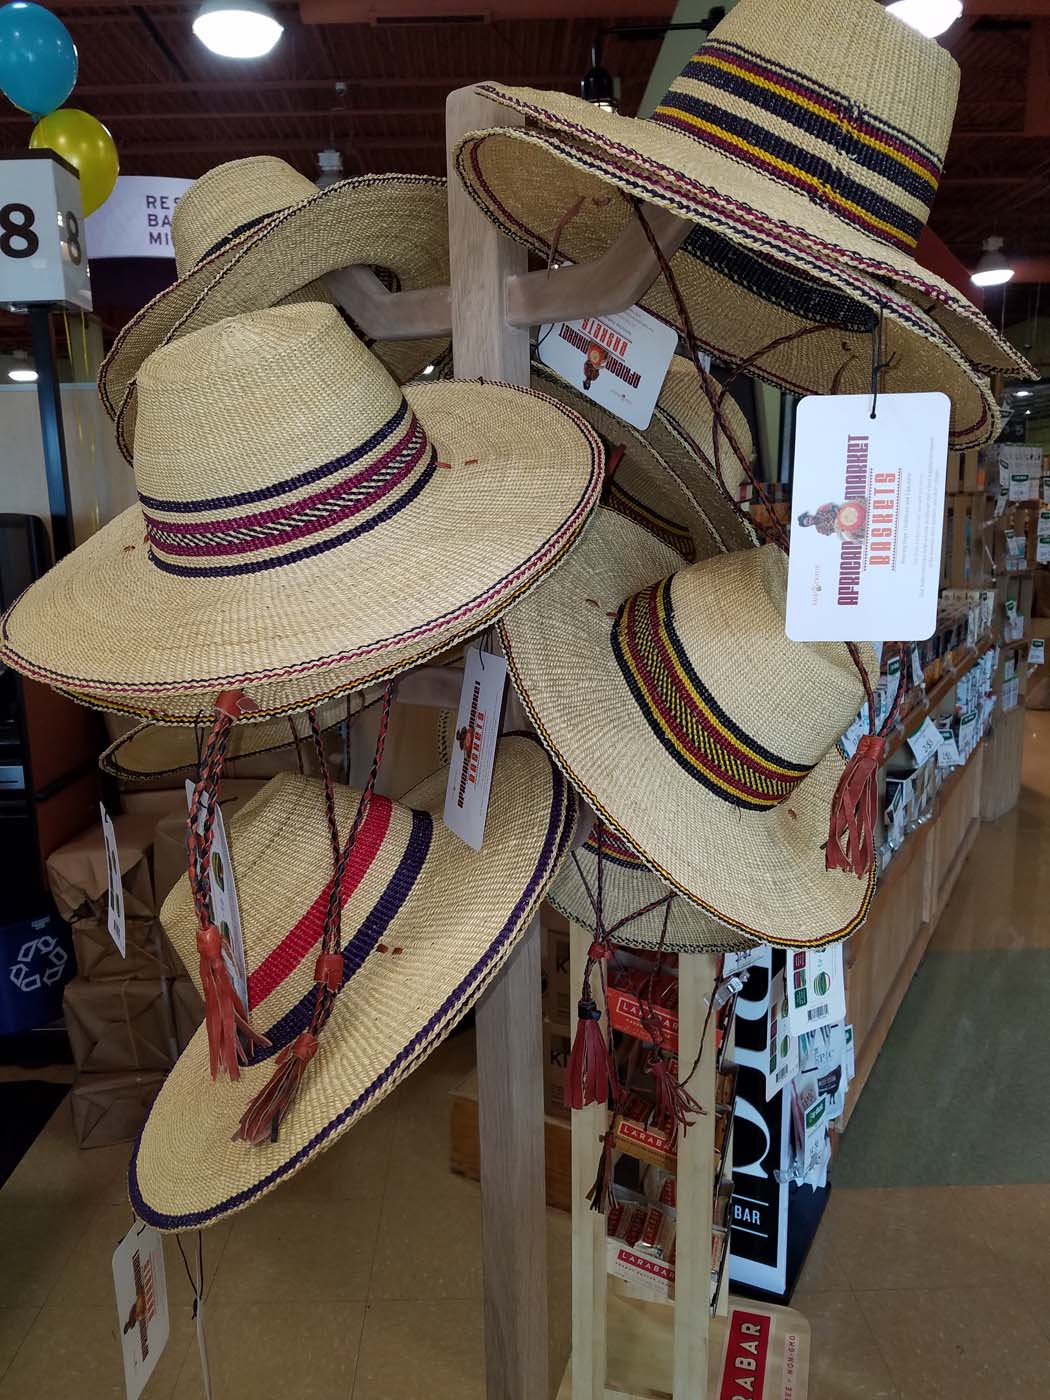 Bolga hats can be hung easily on existing displays